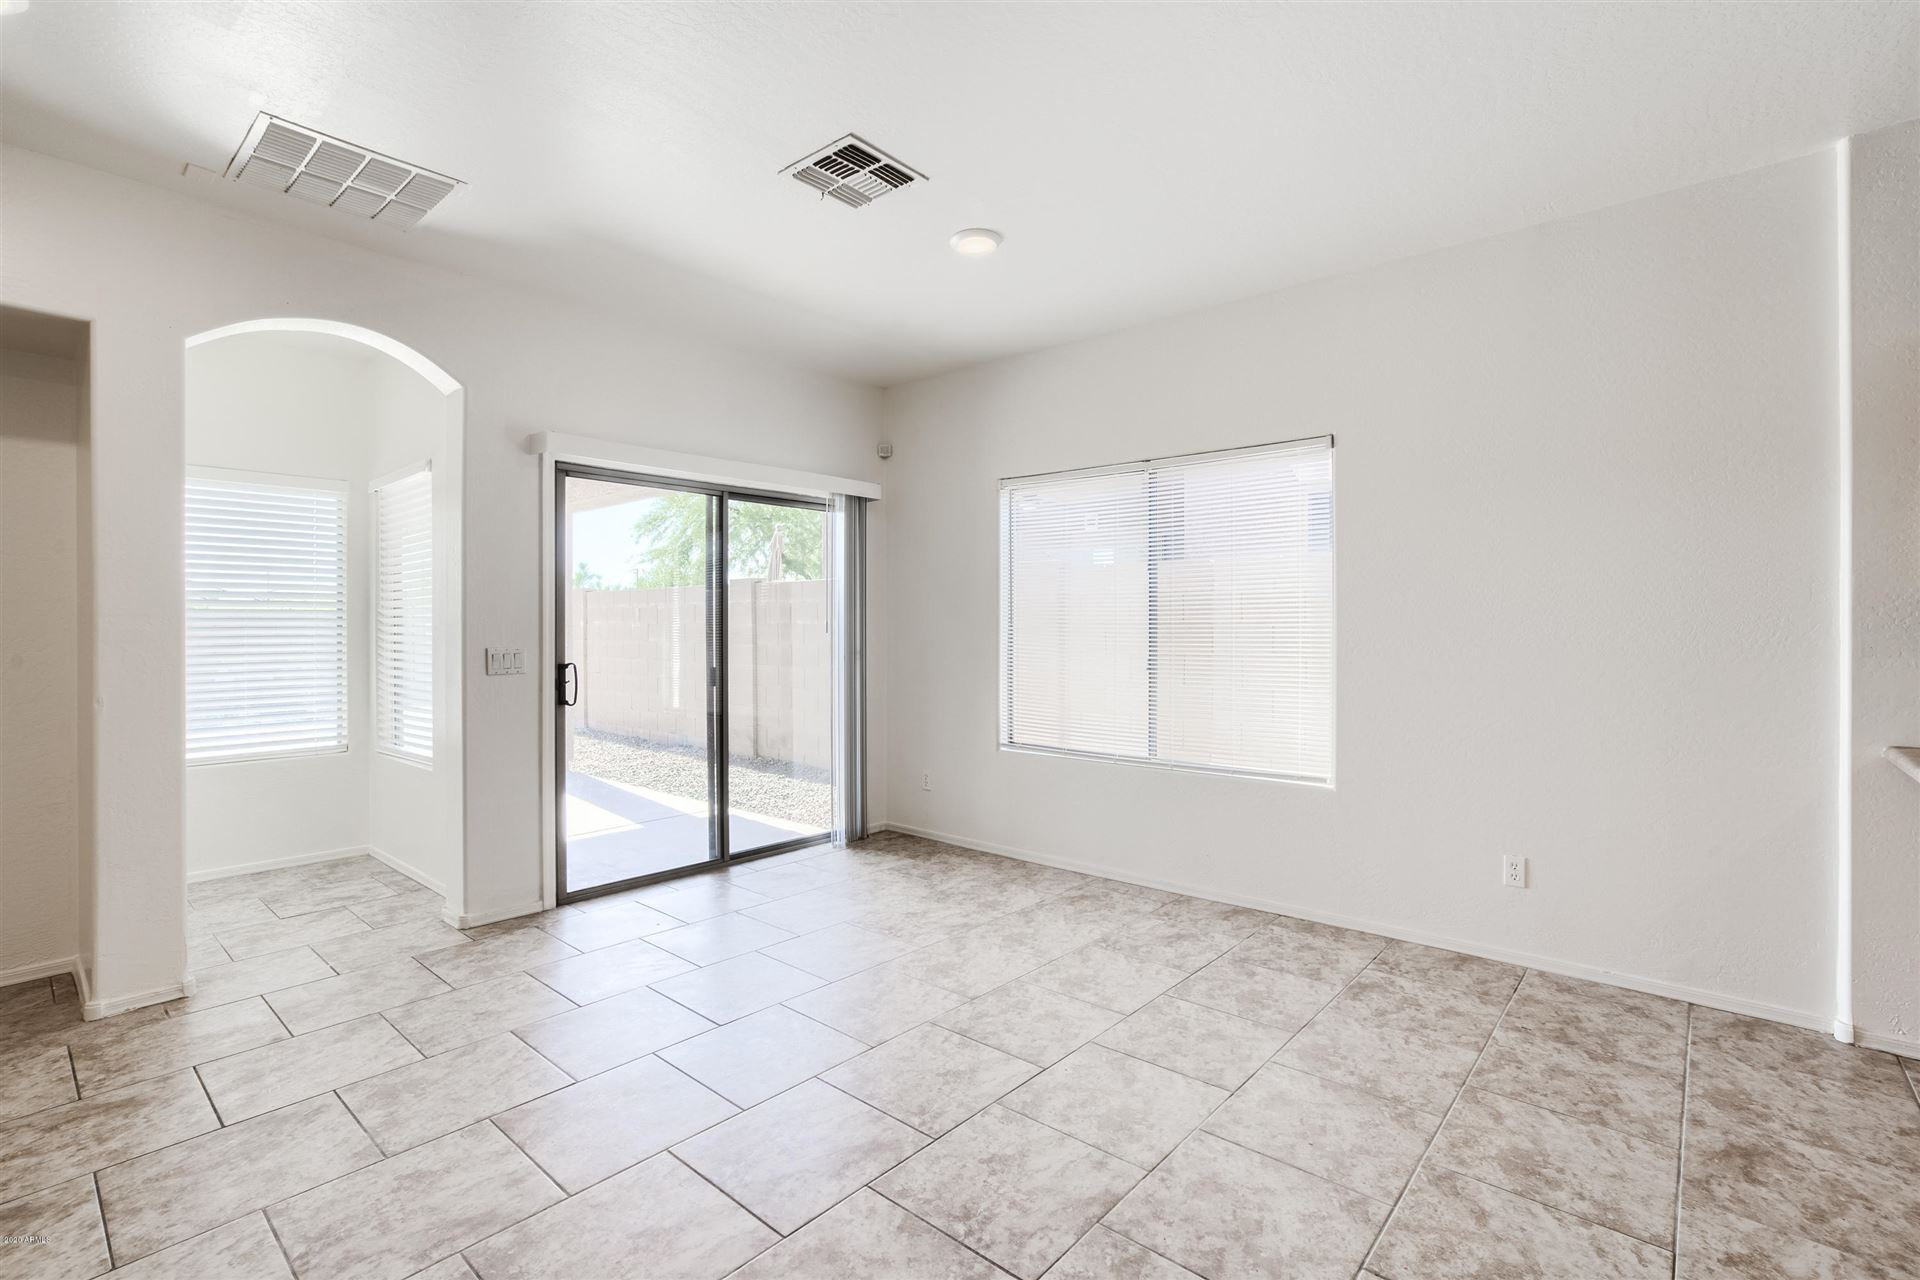 Property Image Of 33724 N 26Th Avenue In Phoenix, Az